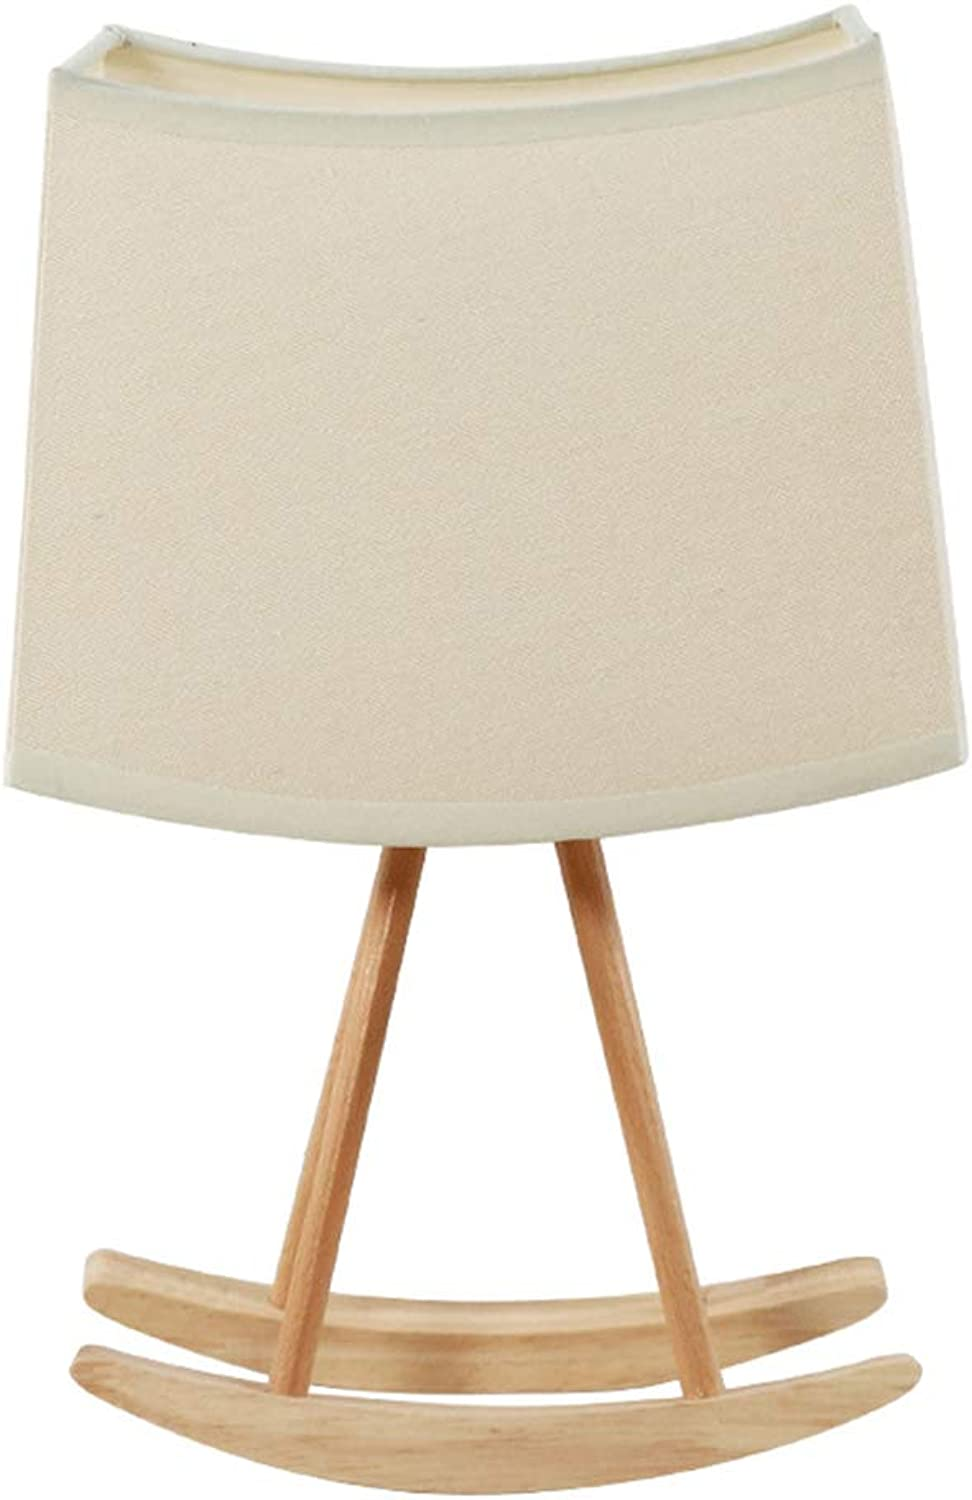 LL-Enyoyy Nordic Wind Tischlampe, Kinderzimmer Nachttischlampe, Creative Sail Romantic Simple Personality Lampe